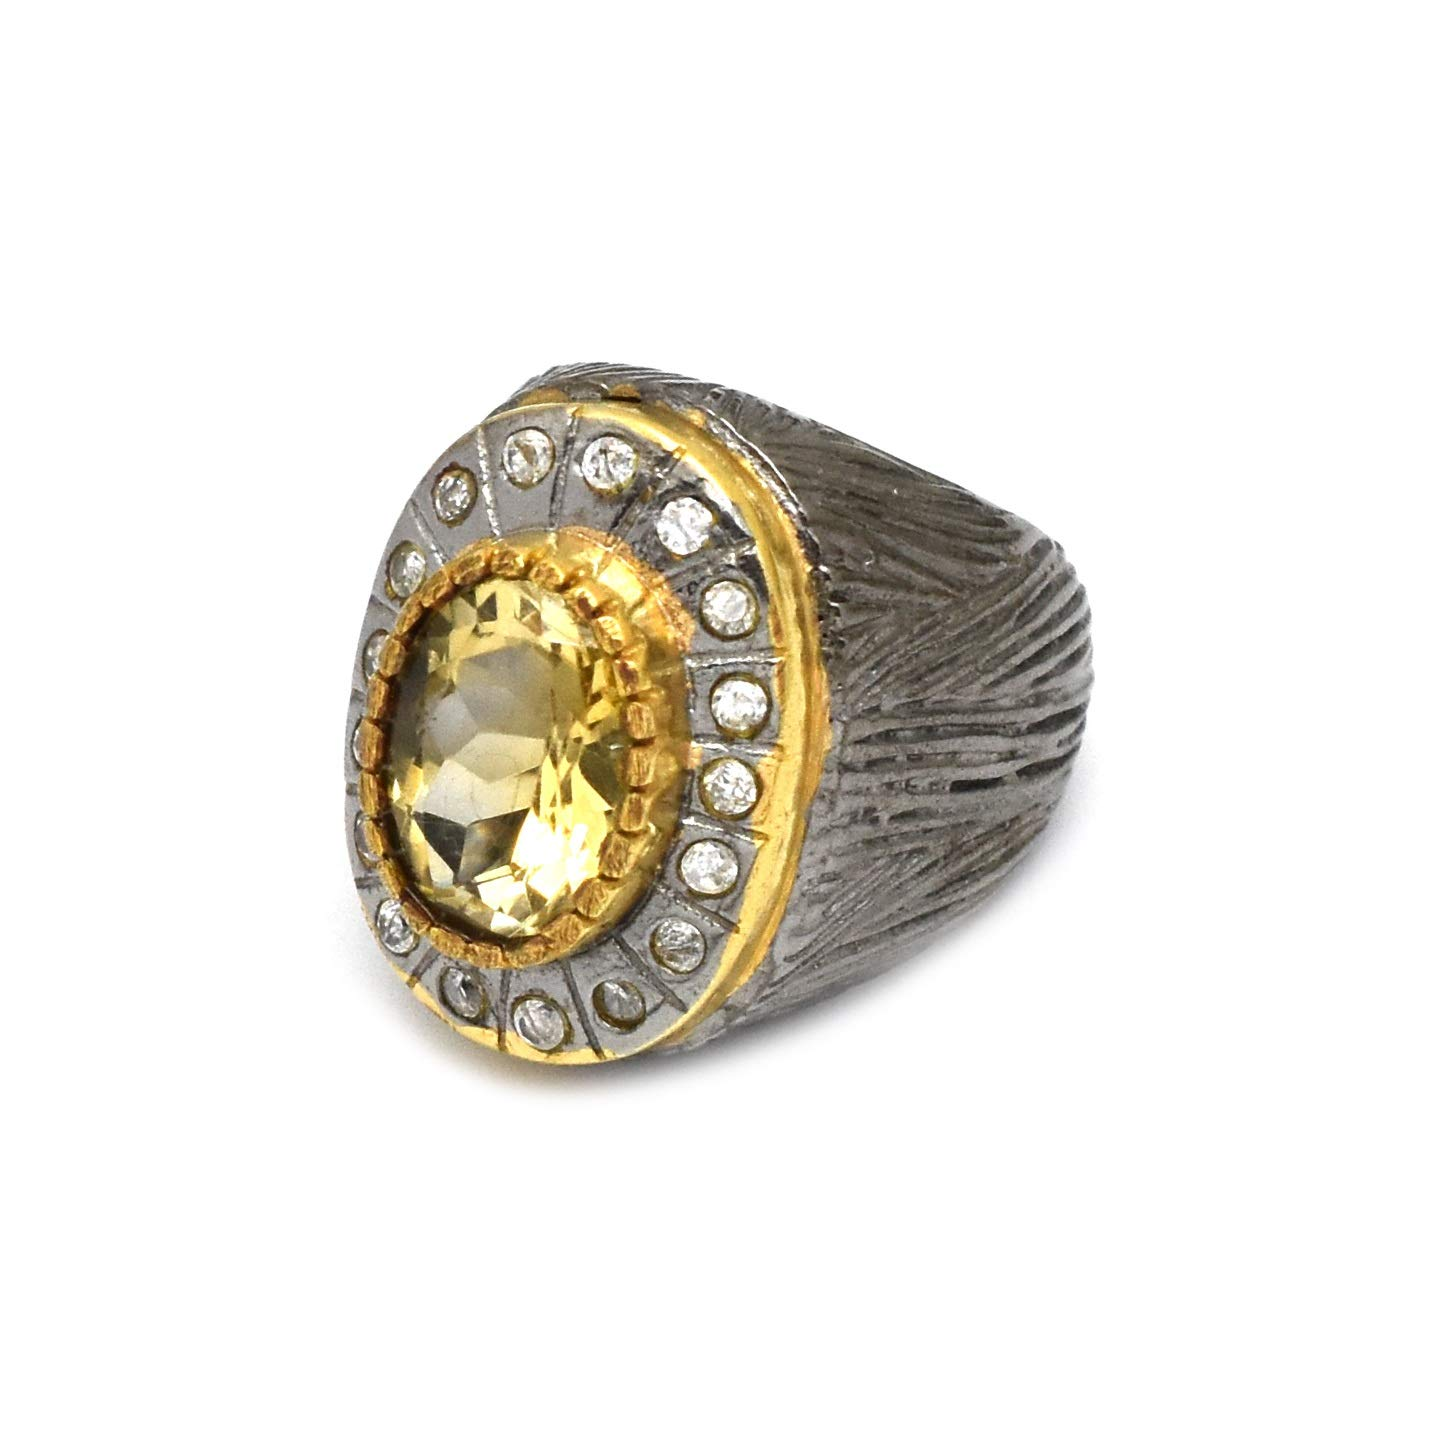 Black Rhodium Plated Citrine Collection The Rings 22k Yellow Gold V White cz Fashion Jewelry Rings Gifts for her